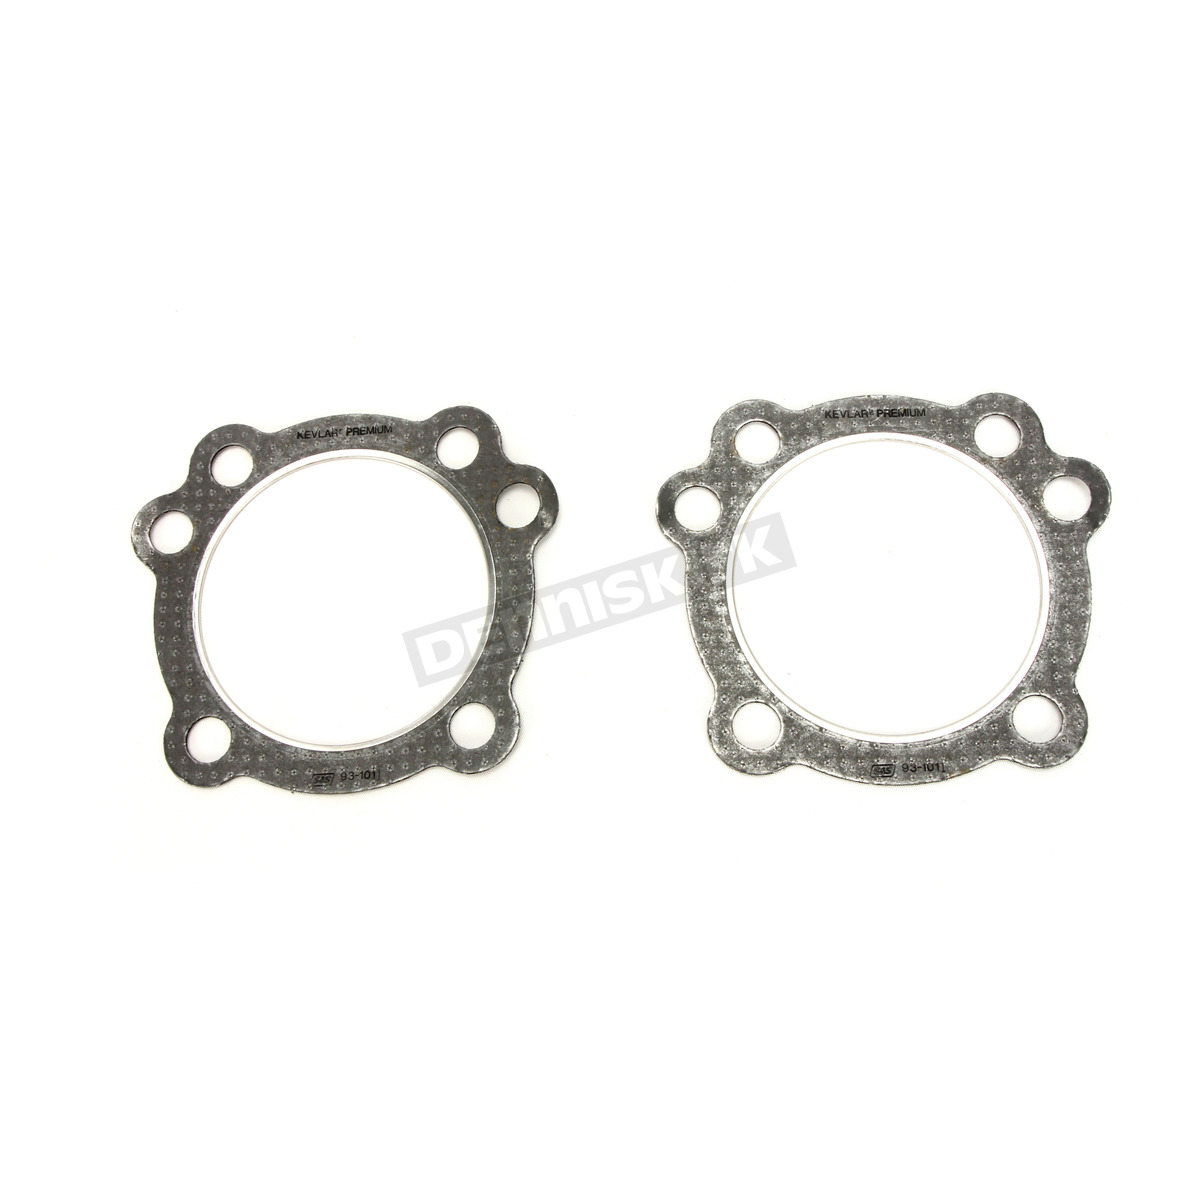 Head Gaskets w/o O-rings 3 1/2 in  bore,  045 in  thickness - 930-0098